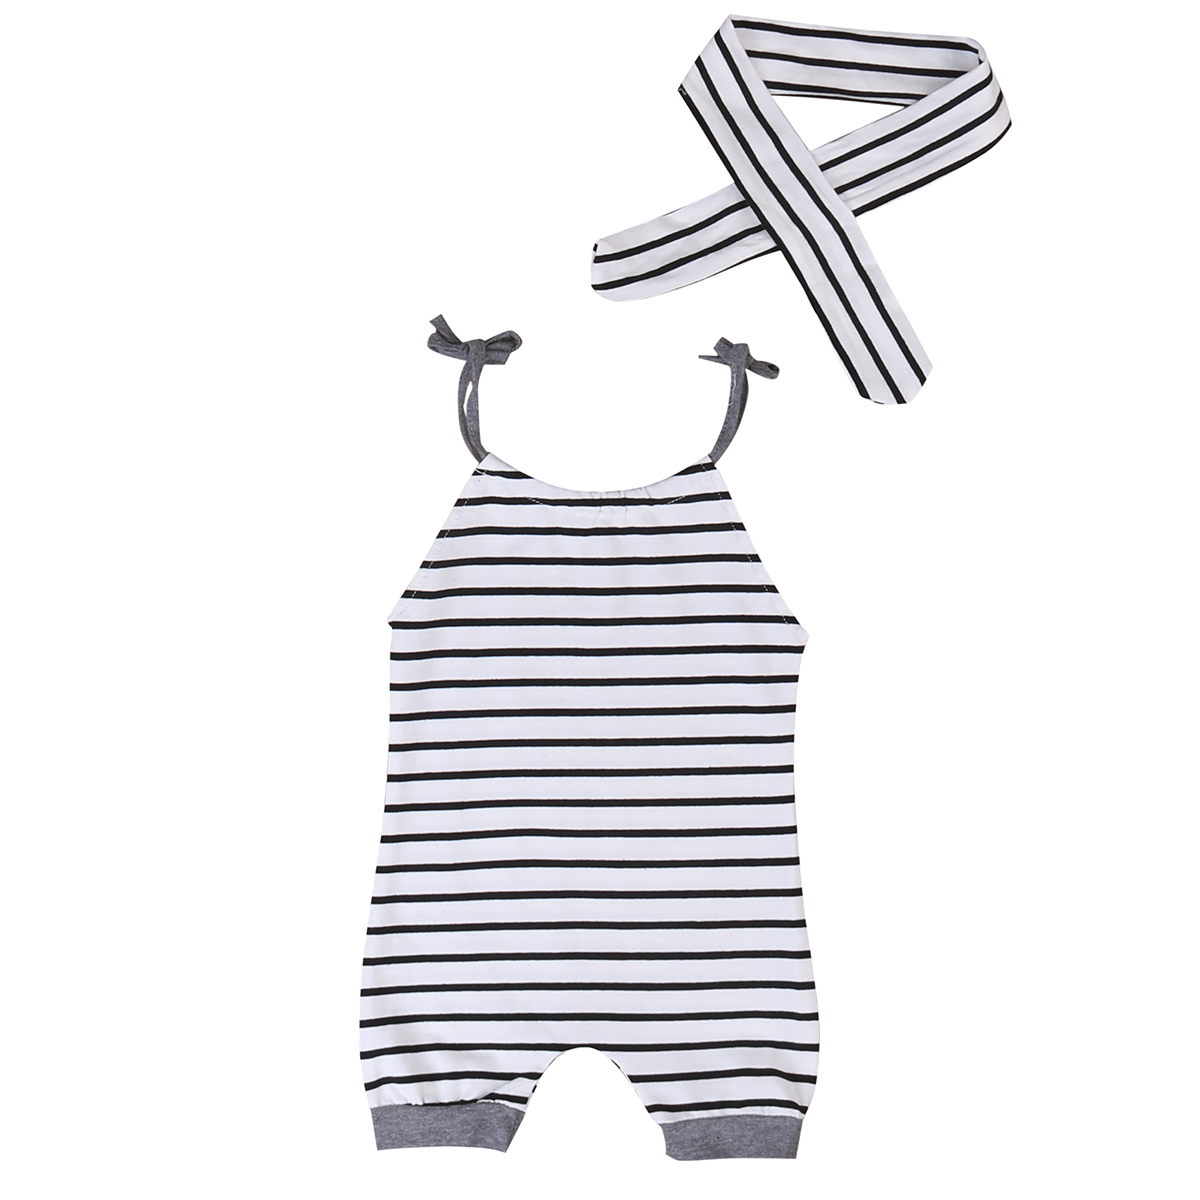 Newborn Toddler Baby Boys Girls Clothes Romper striped +Headband Infant Girl Rompers baby Boy Outfits newborn baby rompers baby clothing 100% cotton infant jumpsuit ropa bebe long sleeve girl boys rompers costumes baby romper